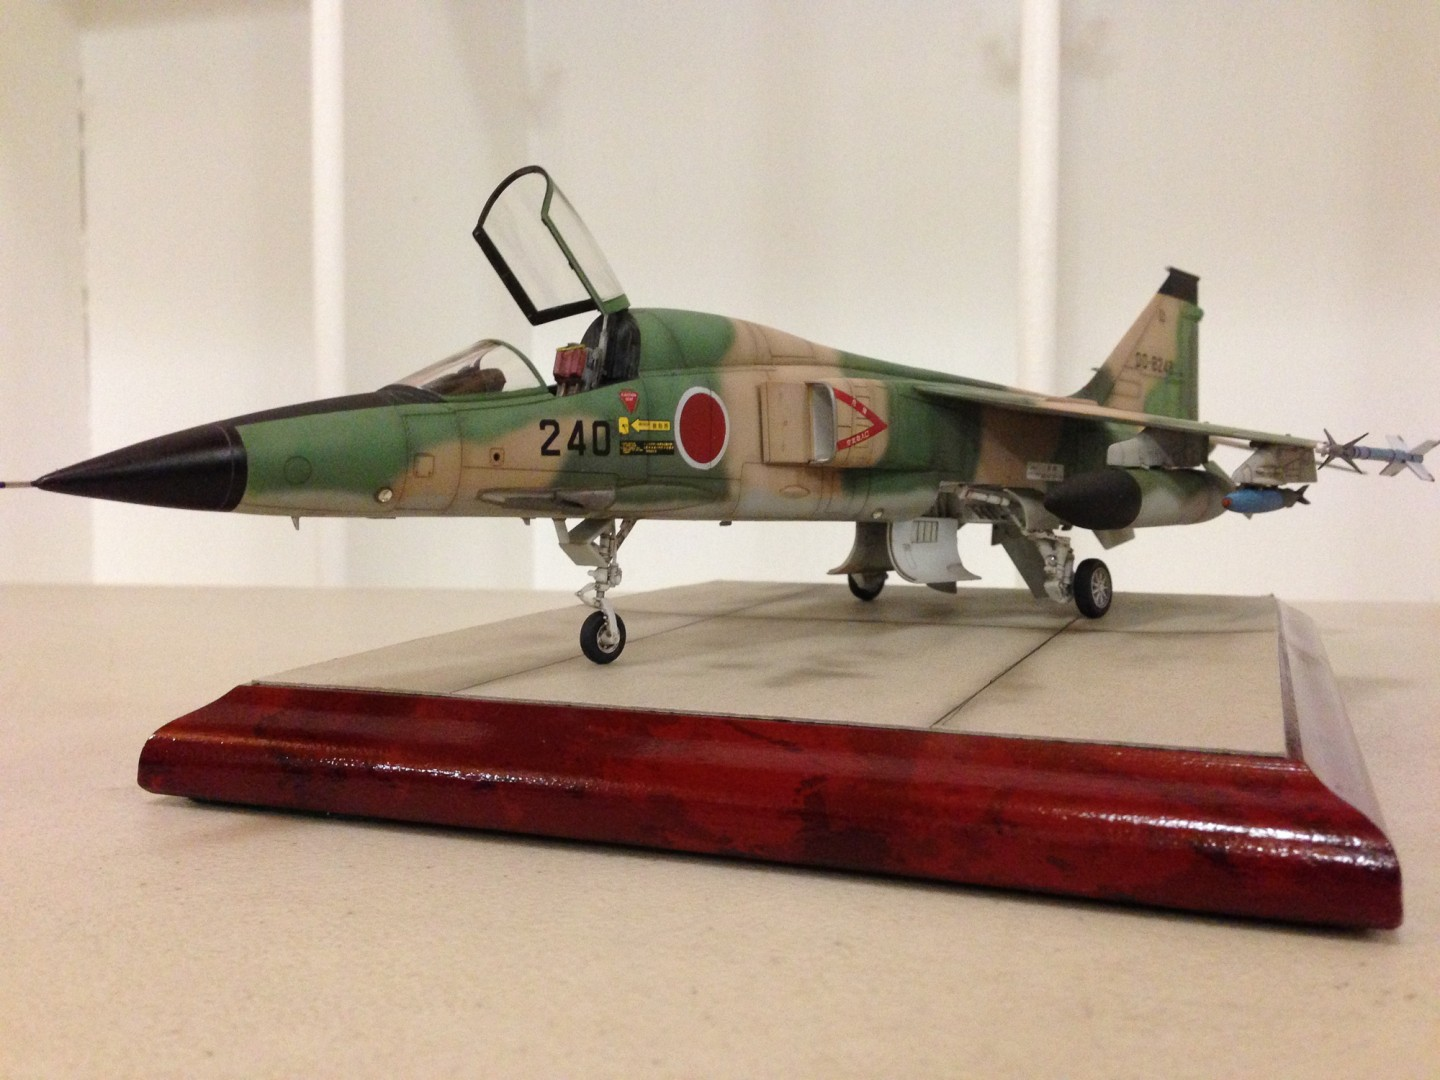 I believe this is a Mitsubishi jet flown by the JSDF. Expertly modeled by Kevin.